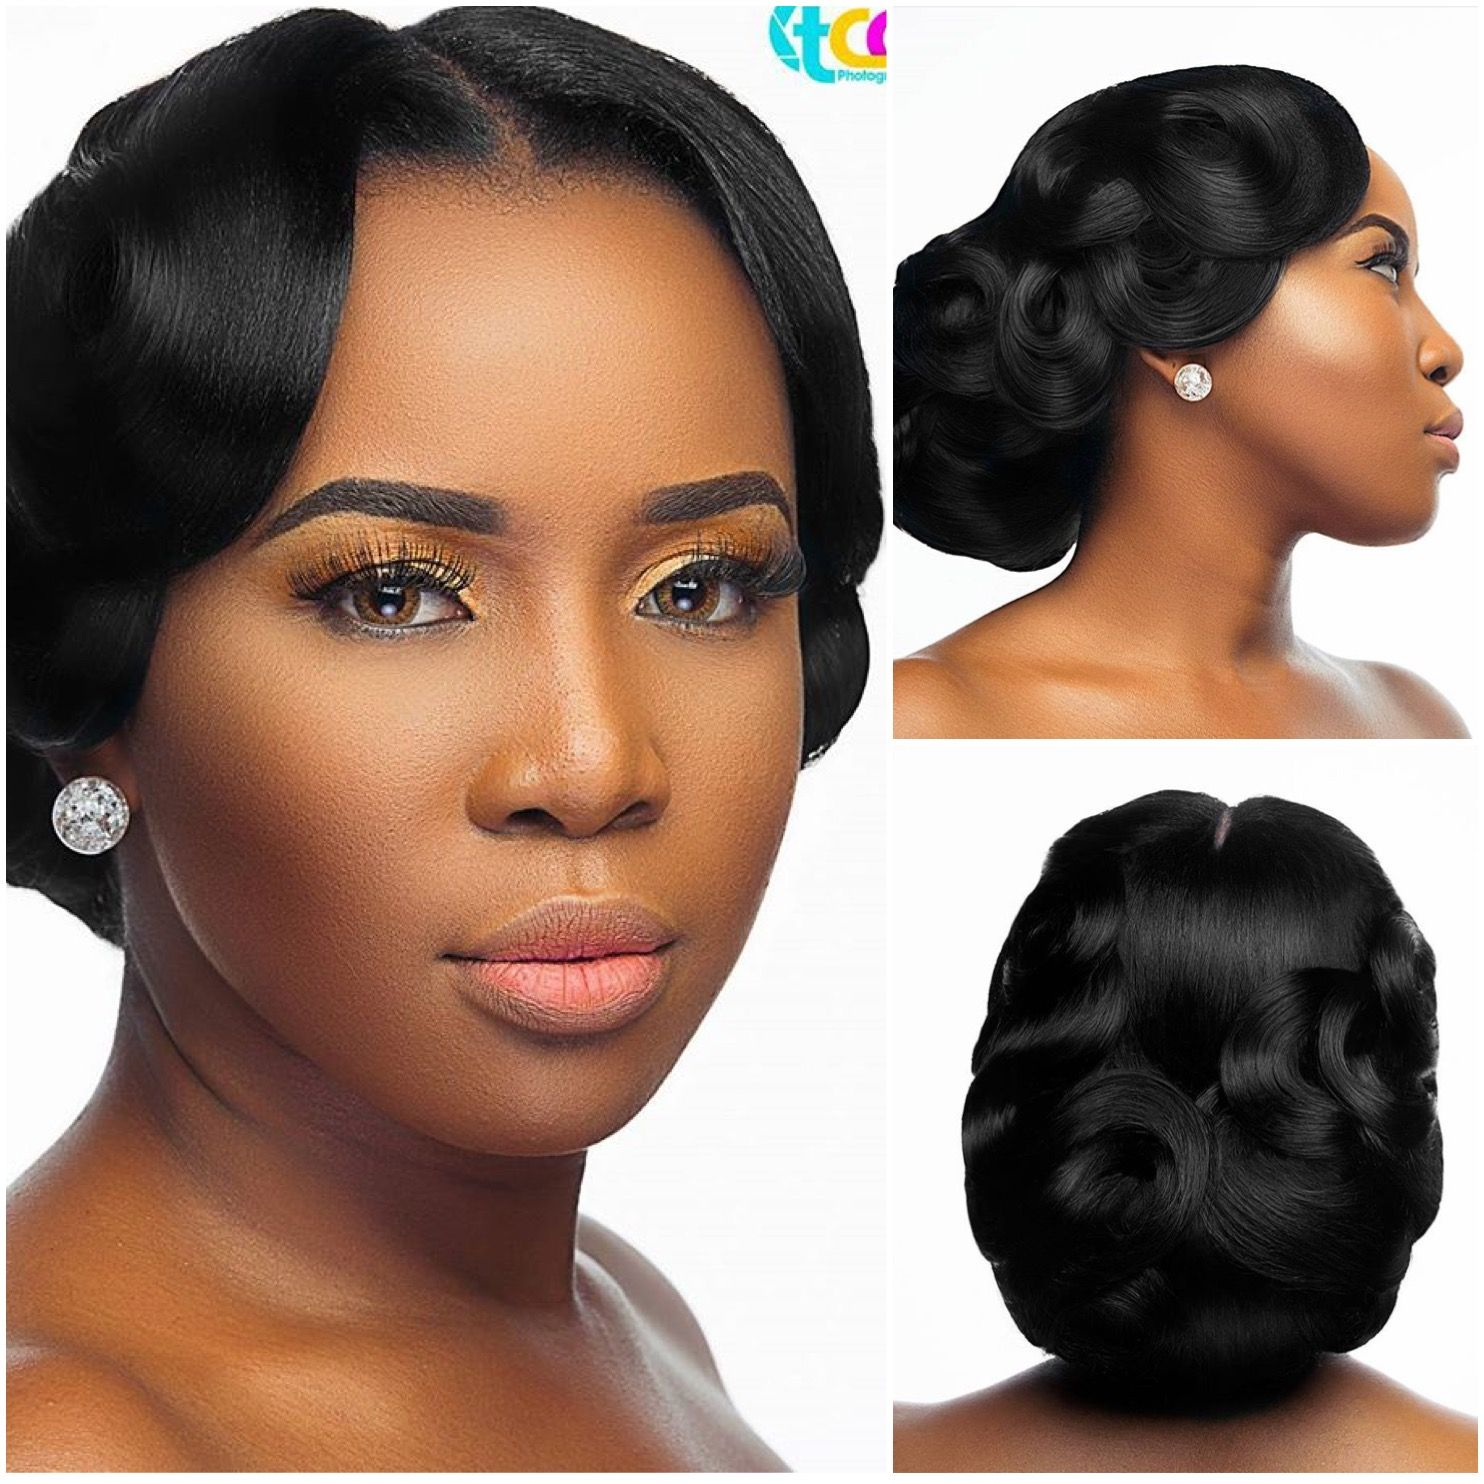 Wedding Hairstyles Dark Hair: Pin By LoveWeddingsNG On Bridal Makeup